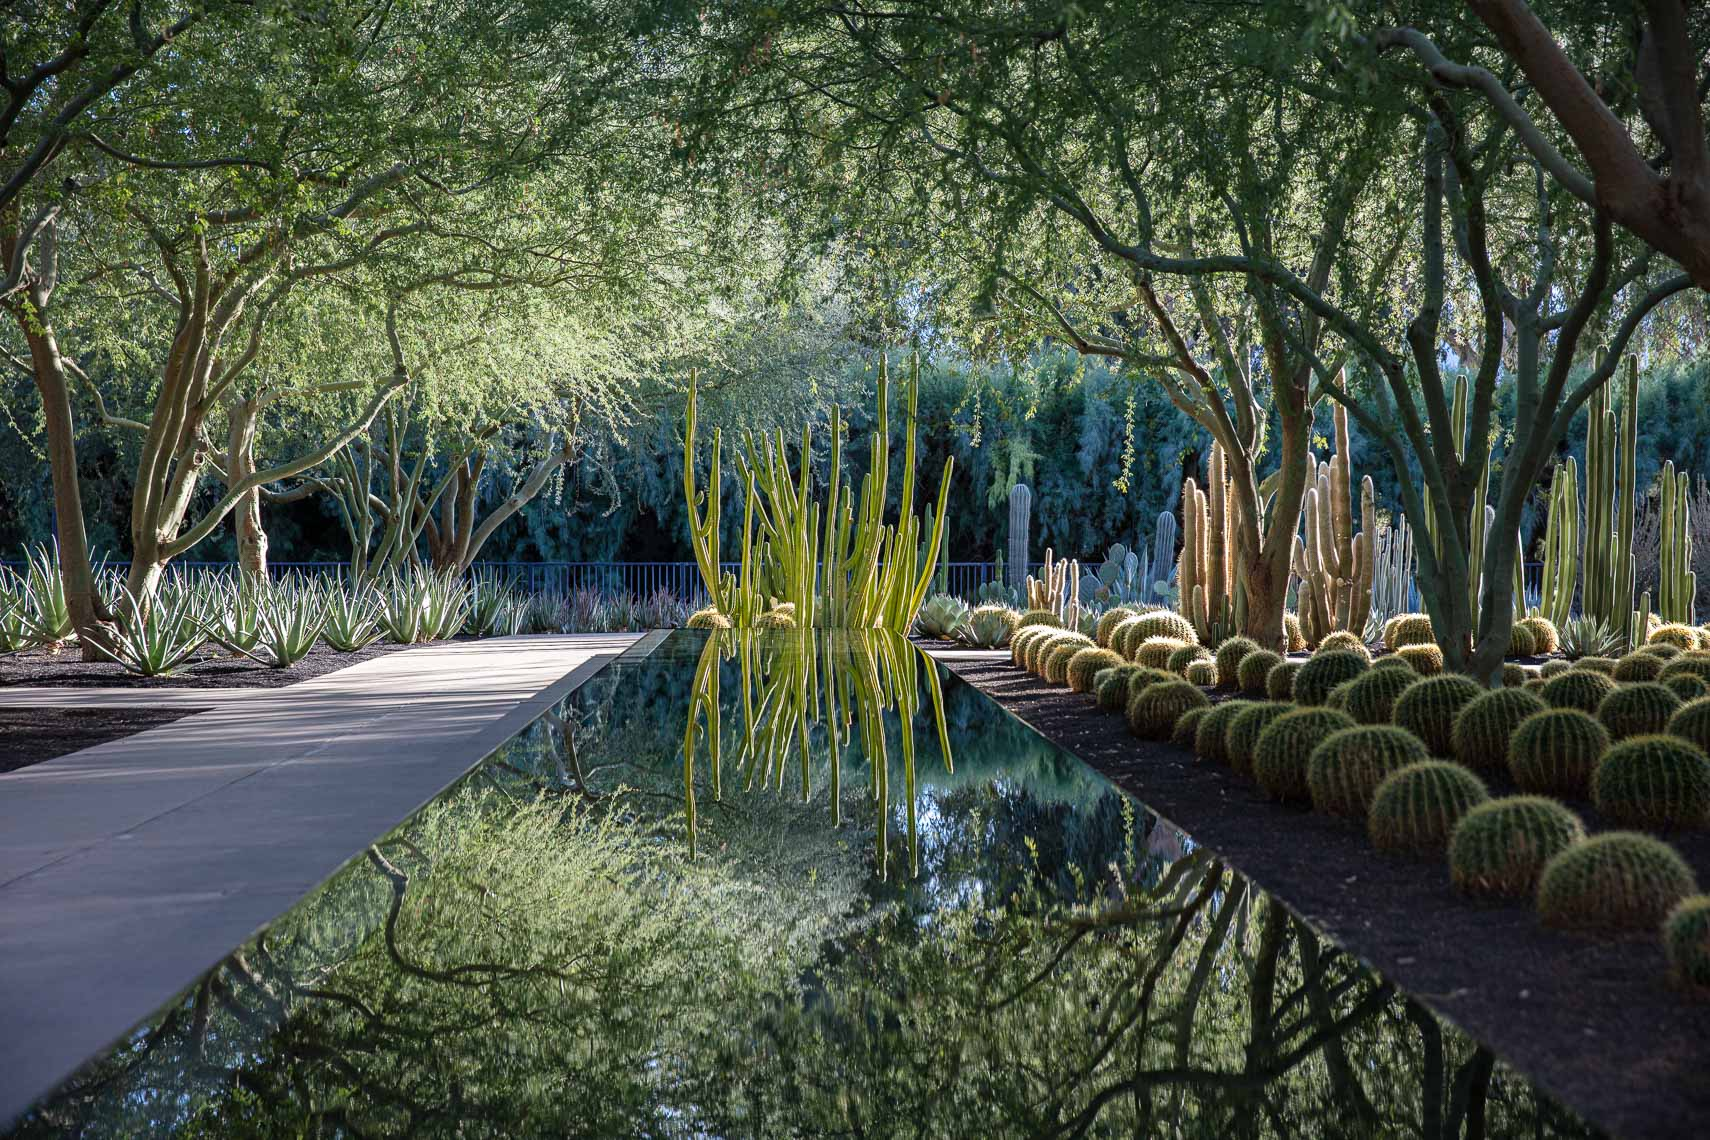 Reflective pool with impressionist painting inspired gardens and landscape